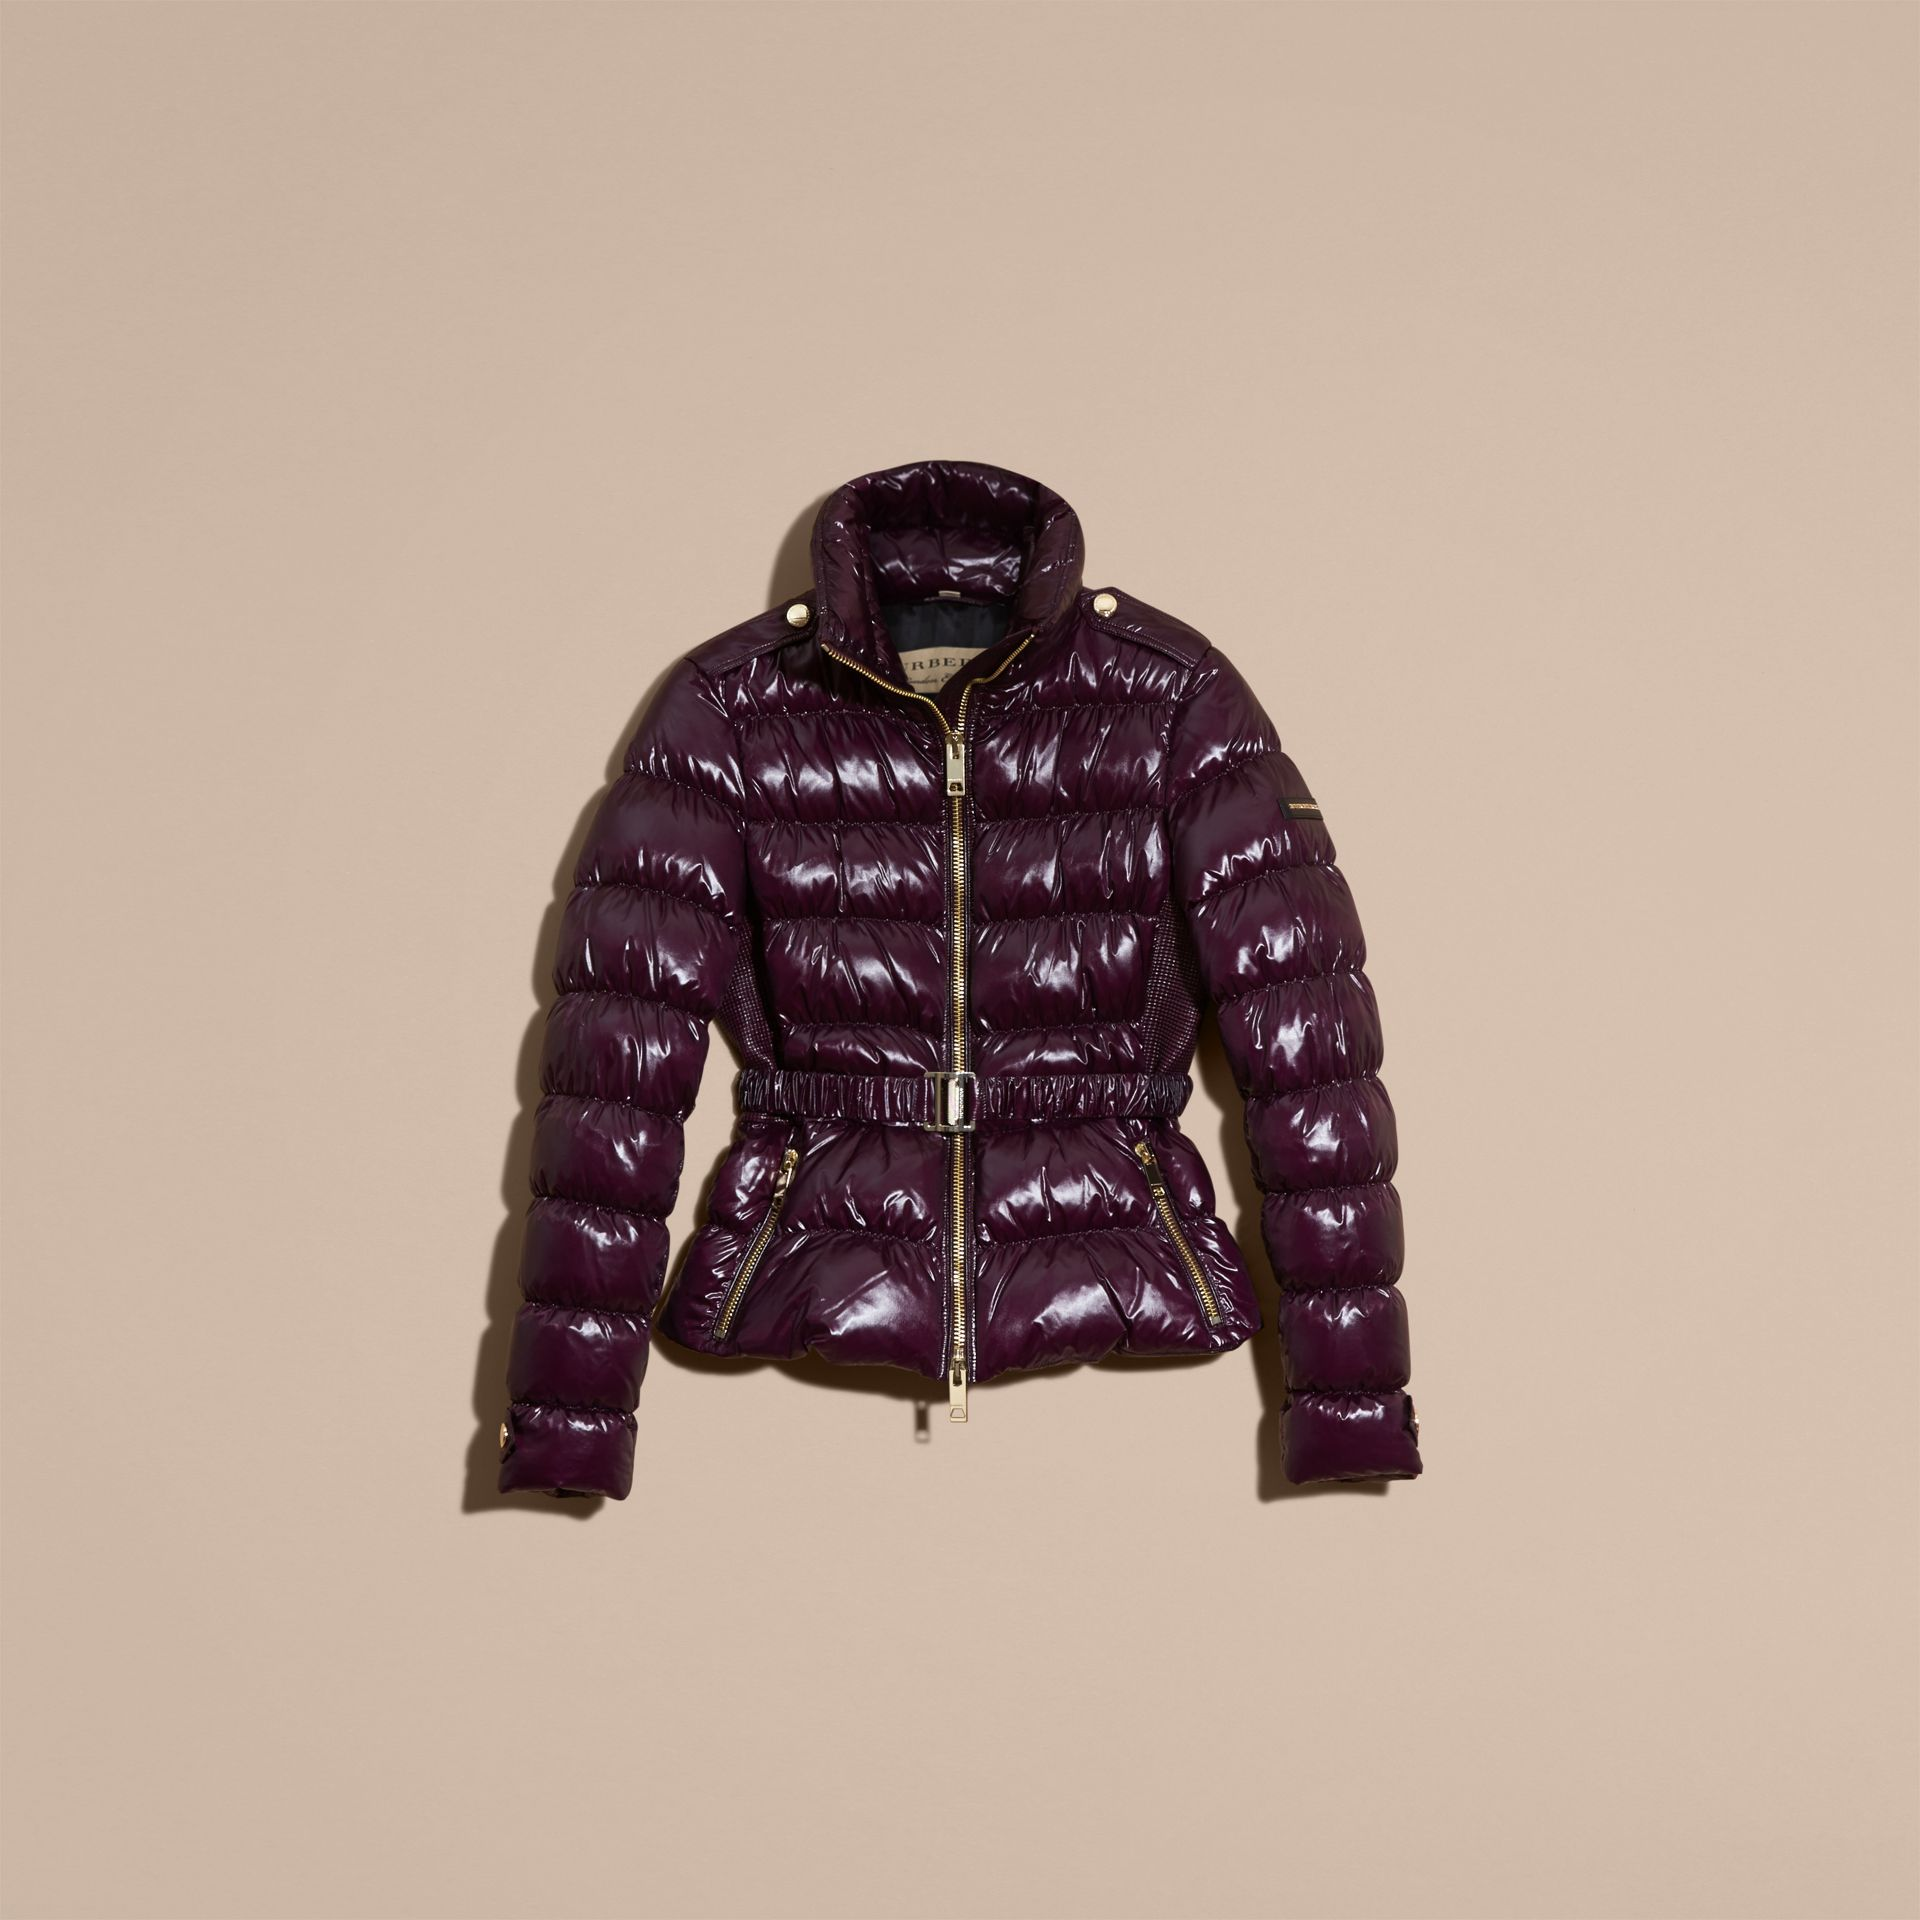 Dark elderberry Lightweight Down-filled Jacket Dark Elderberry - gallery image 4